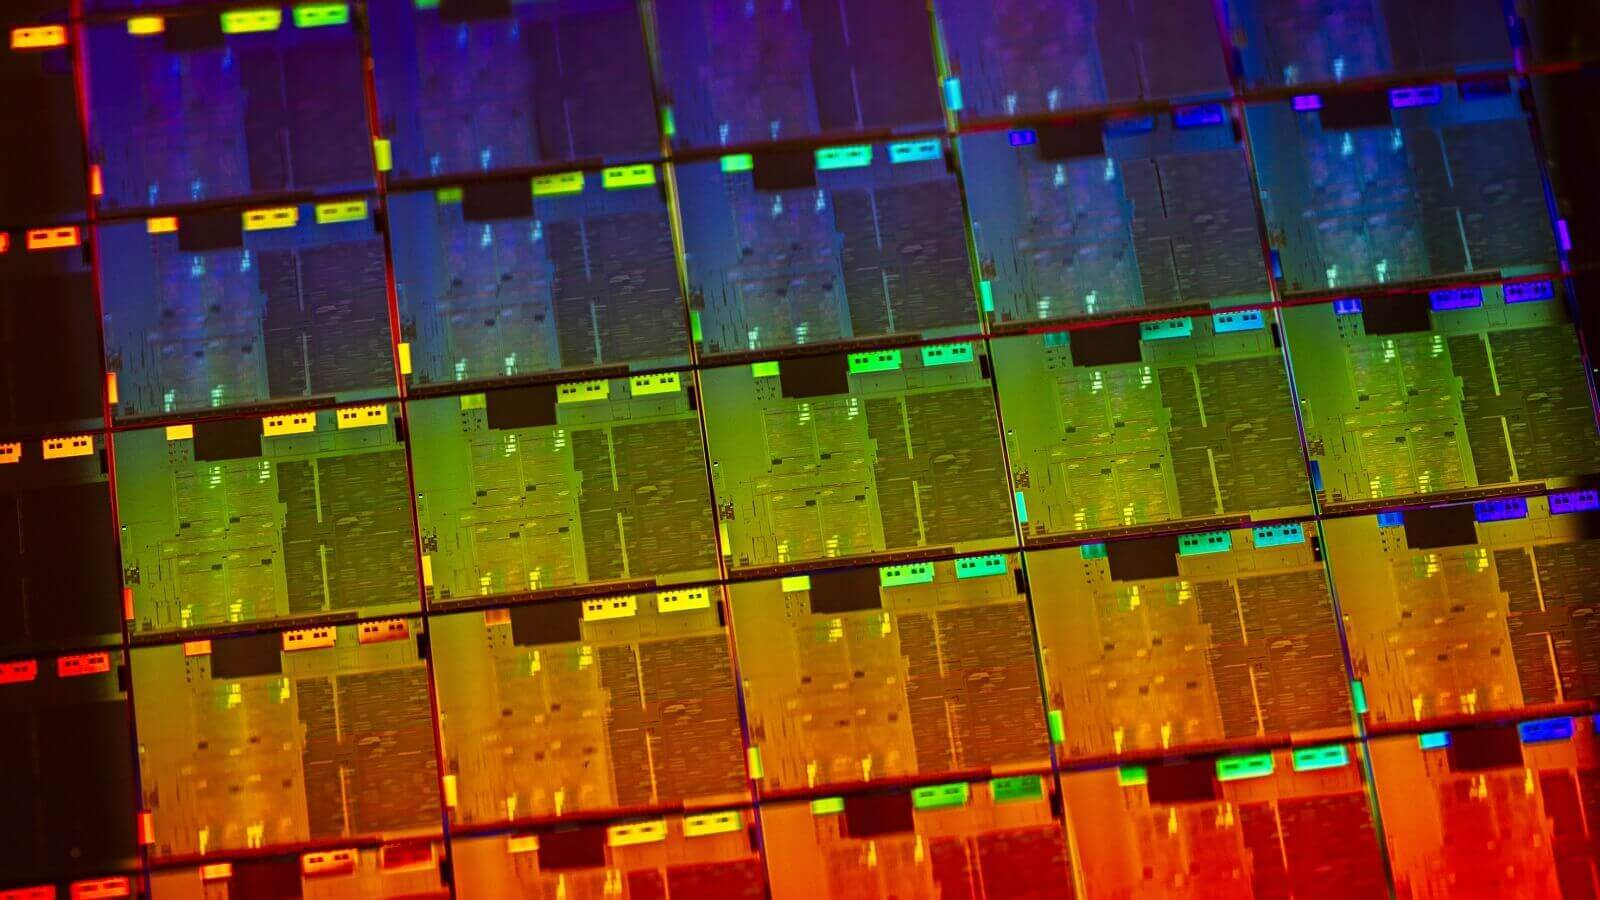 Intel posted better than expected revenues for Q4 2019, but 2020 will be a challenging year